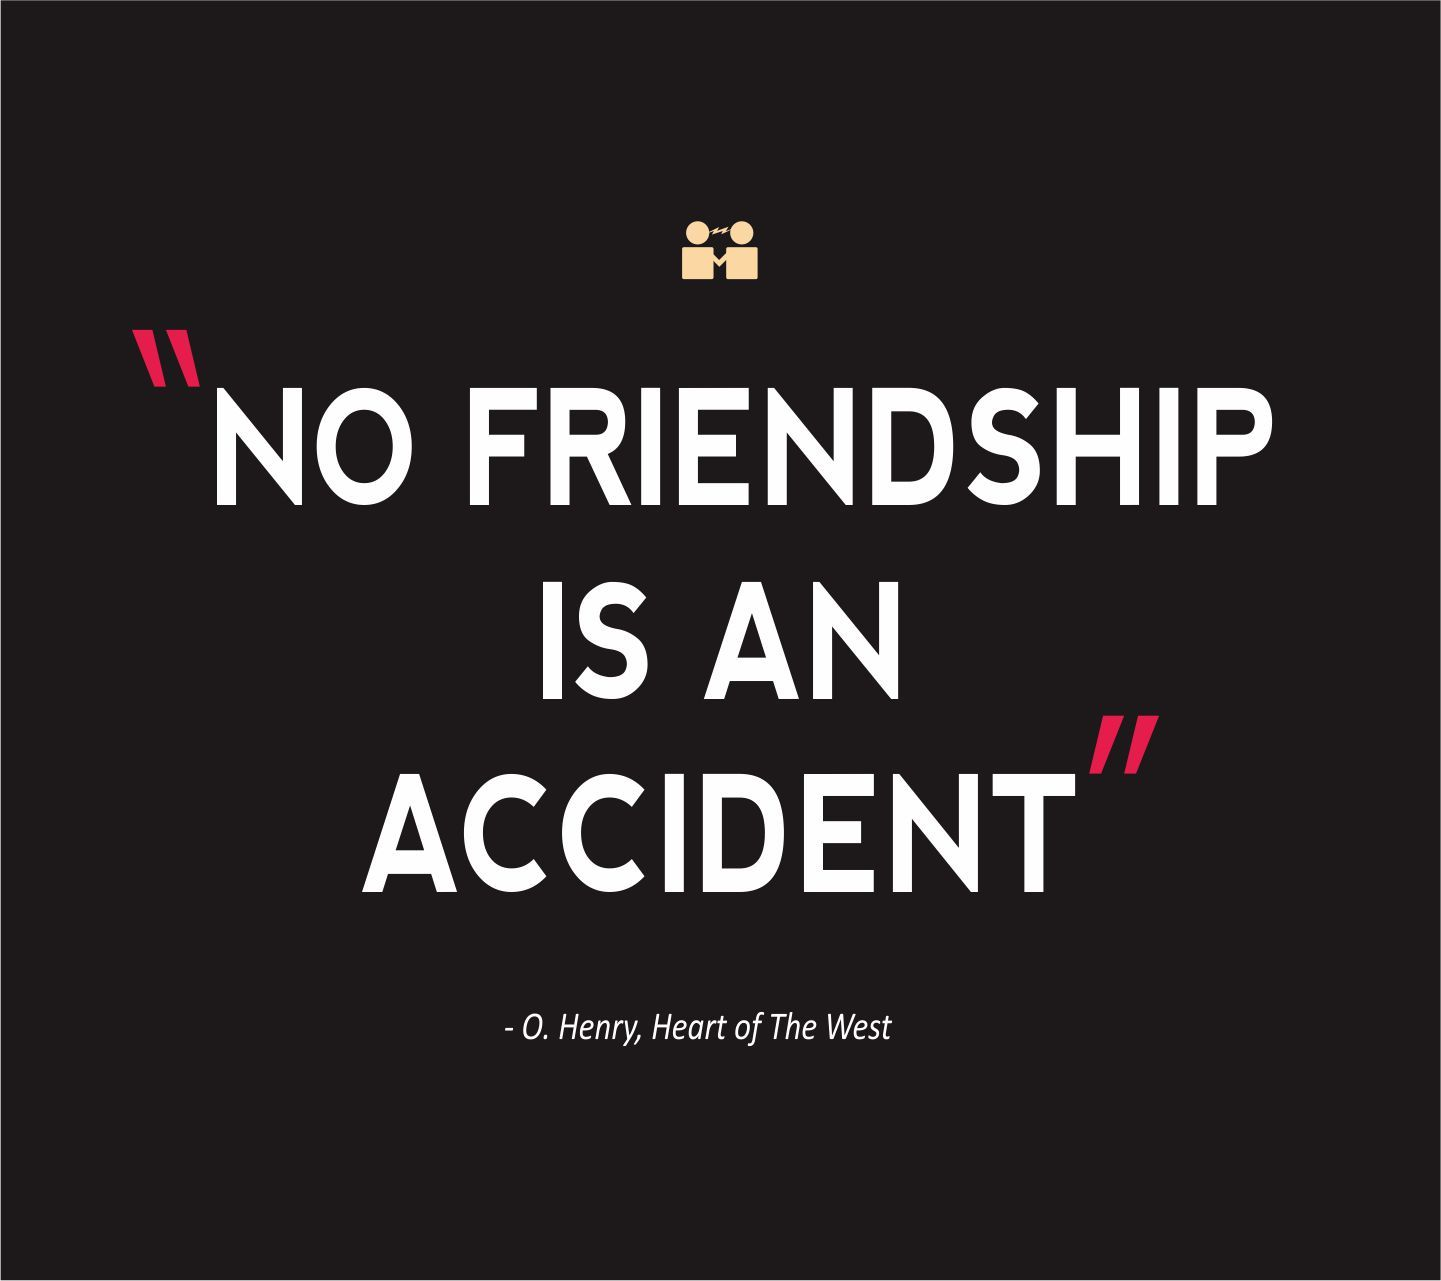 Quotes With Pictures About Friendship Friendship Quotes No Friendship Is An Accident O Henry Heart Of